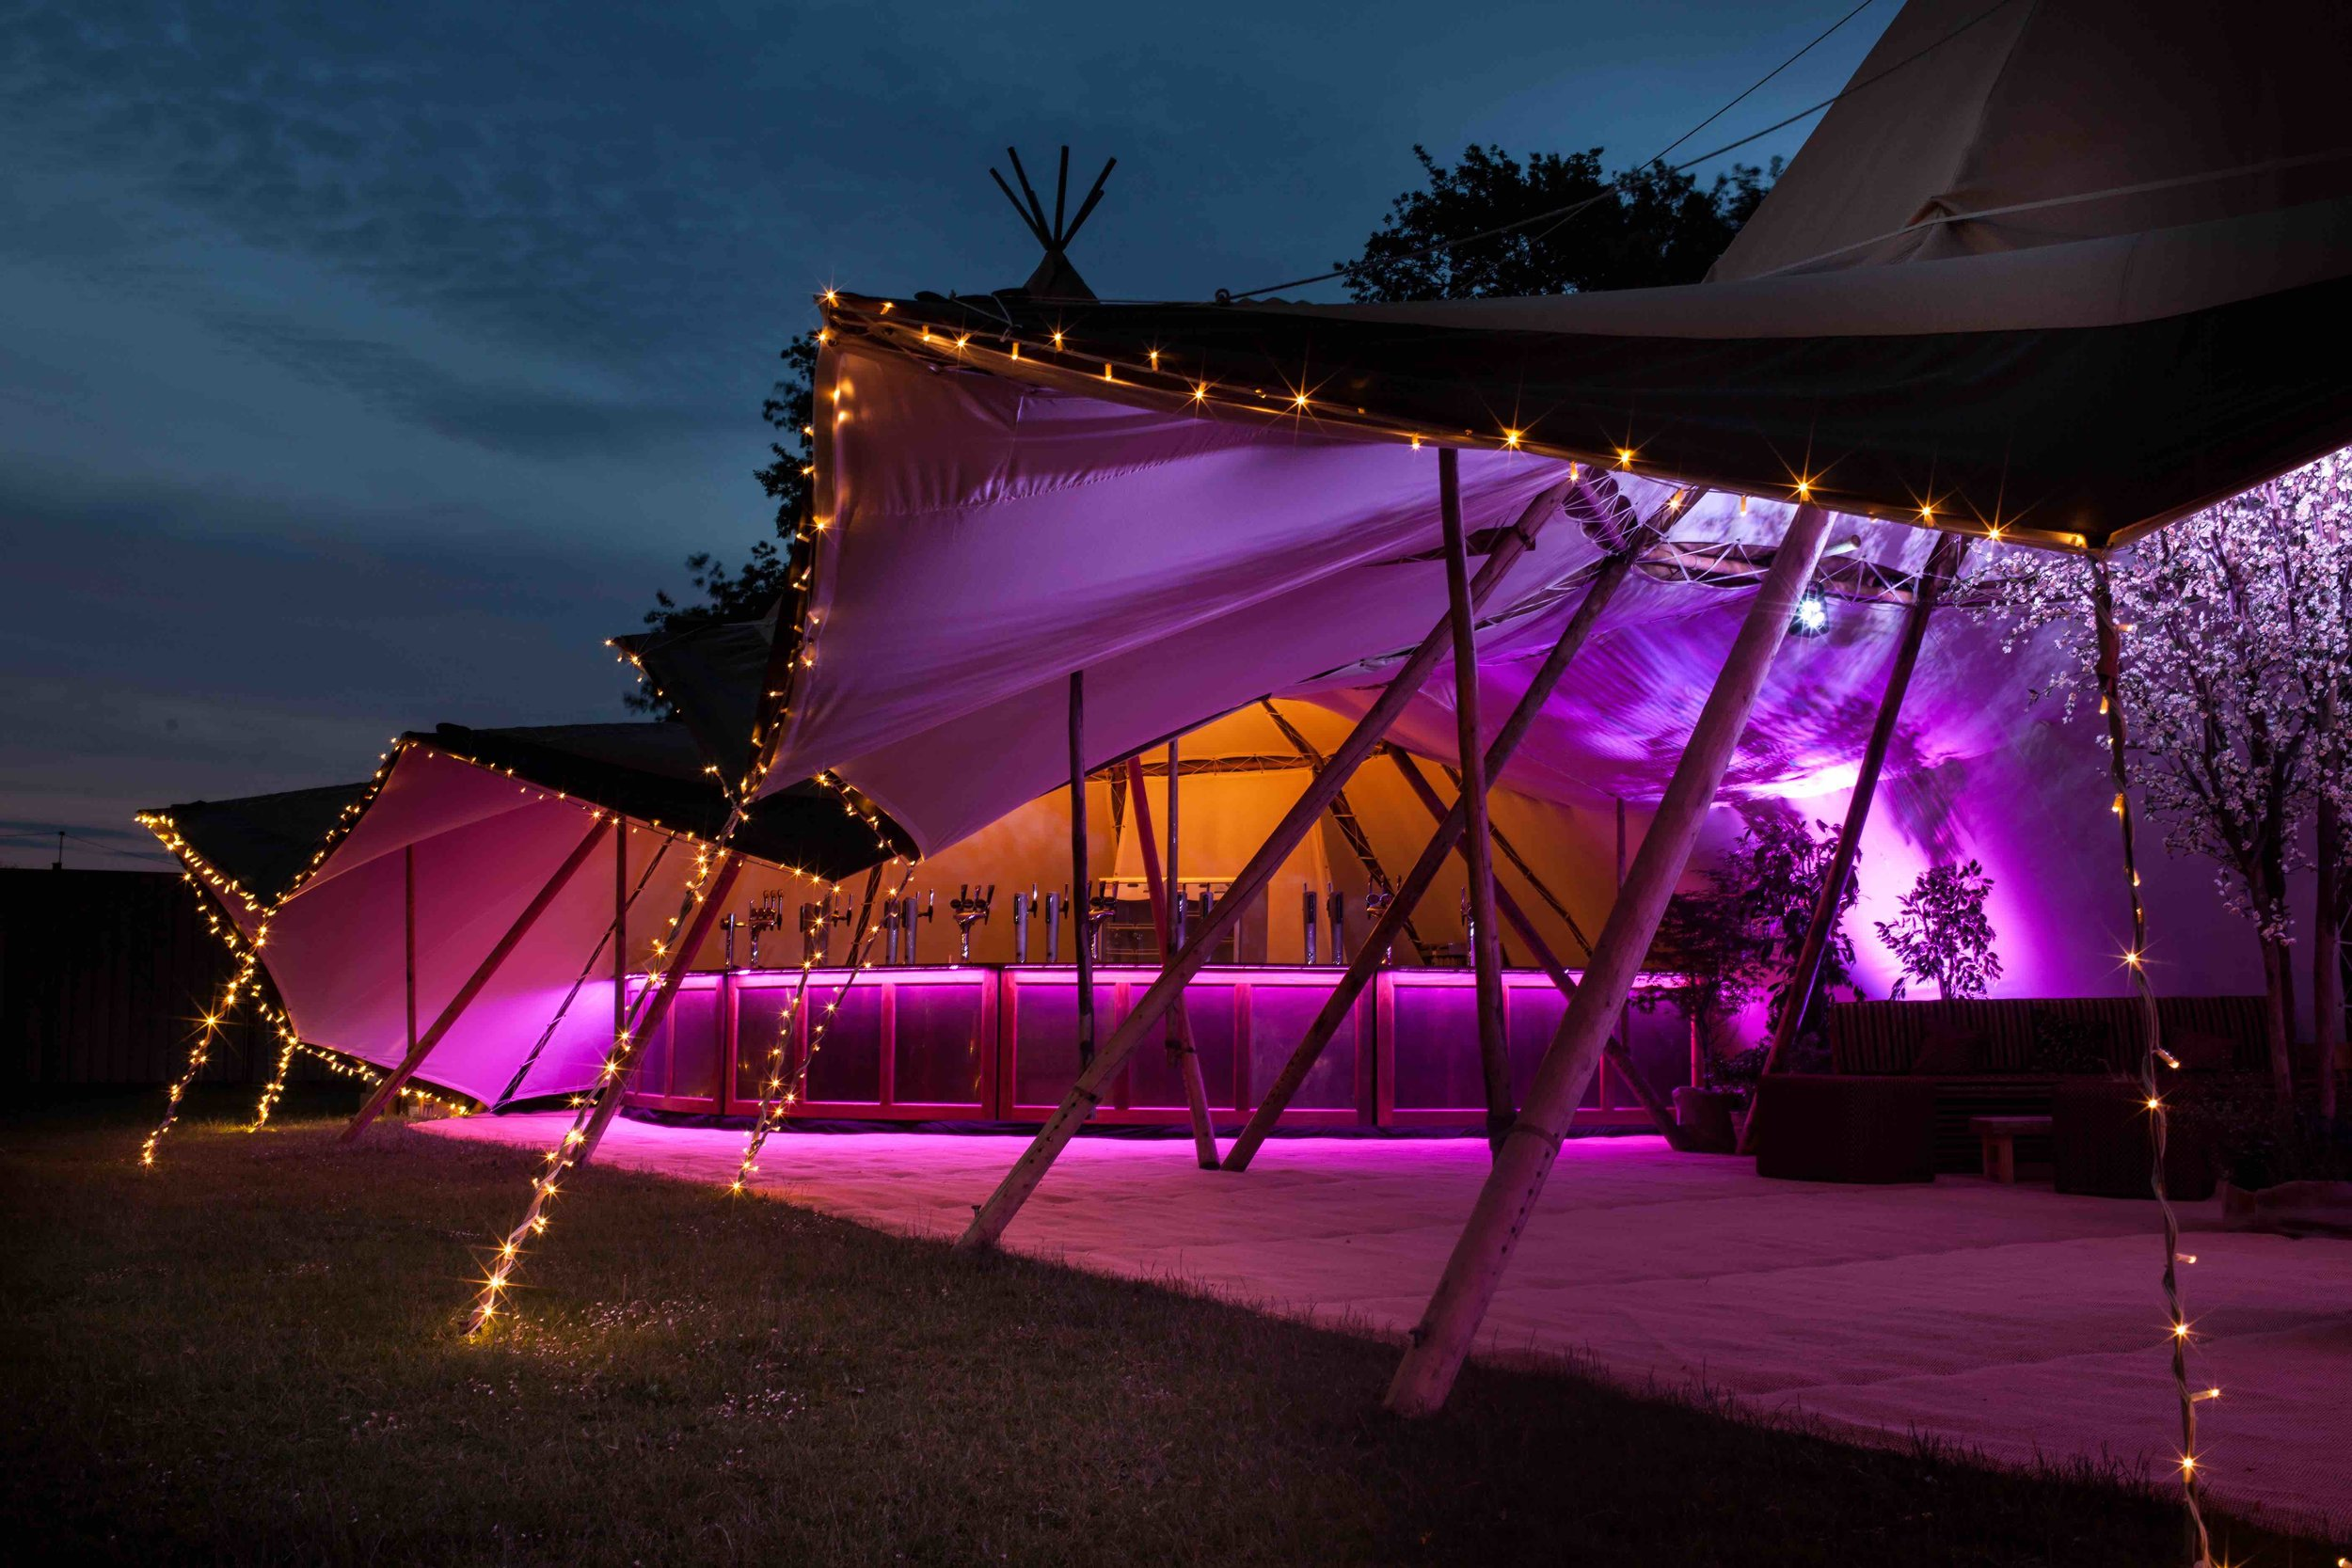 We offer beautiful event lighting for your wedding, party, corporate event or festival, be it fairy lights, floodlights or giant flower lights, which accompany our giant tipi tents perfectly.